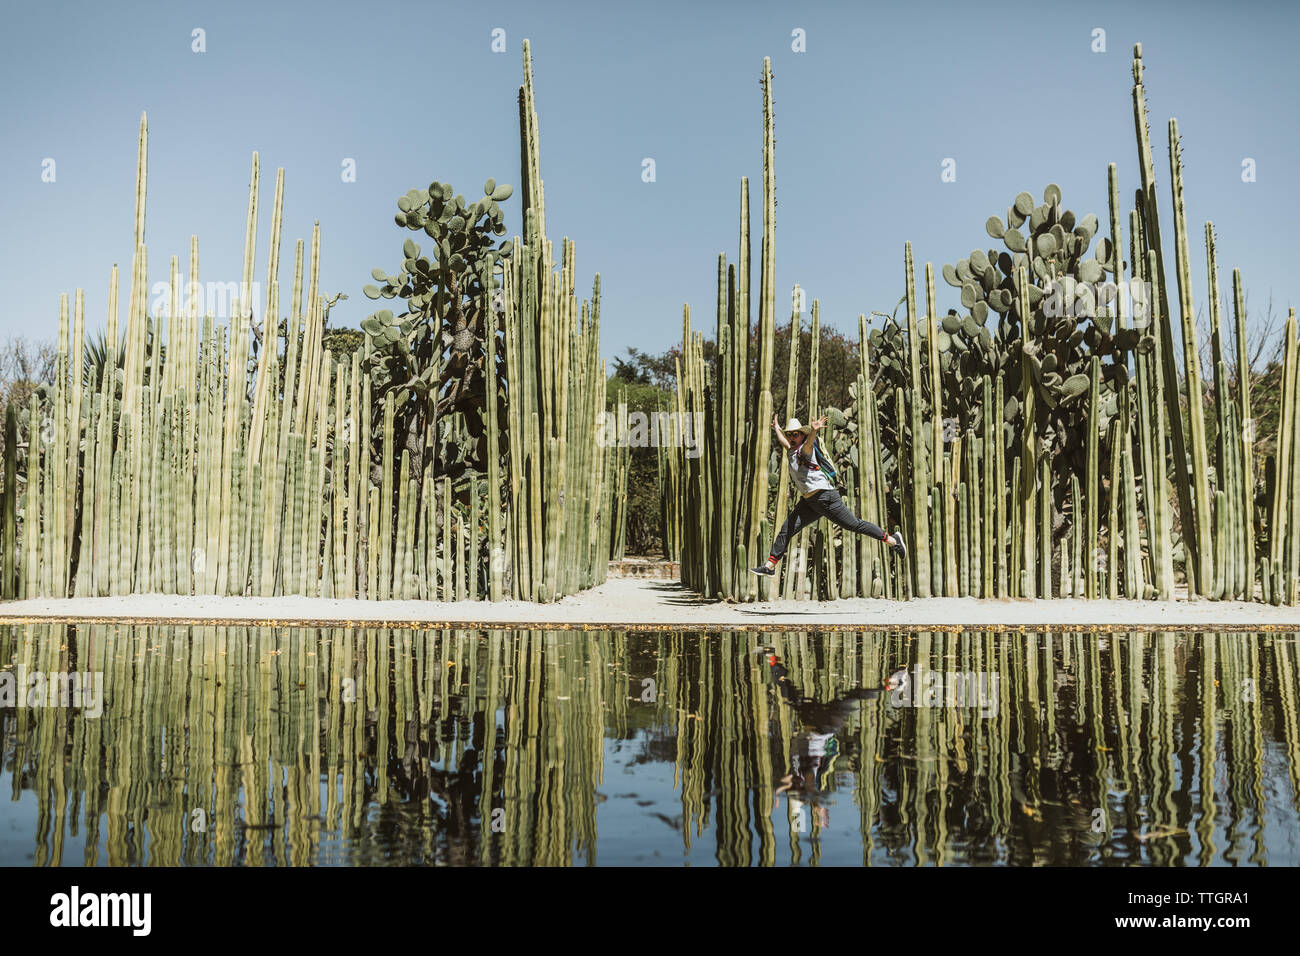 young lady leaps in joy next to reflecting pool of cactus - Stock Image